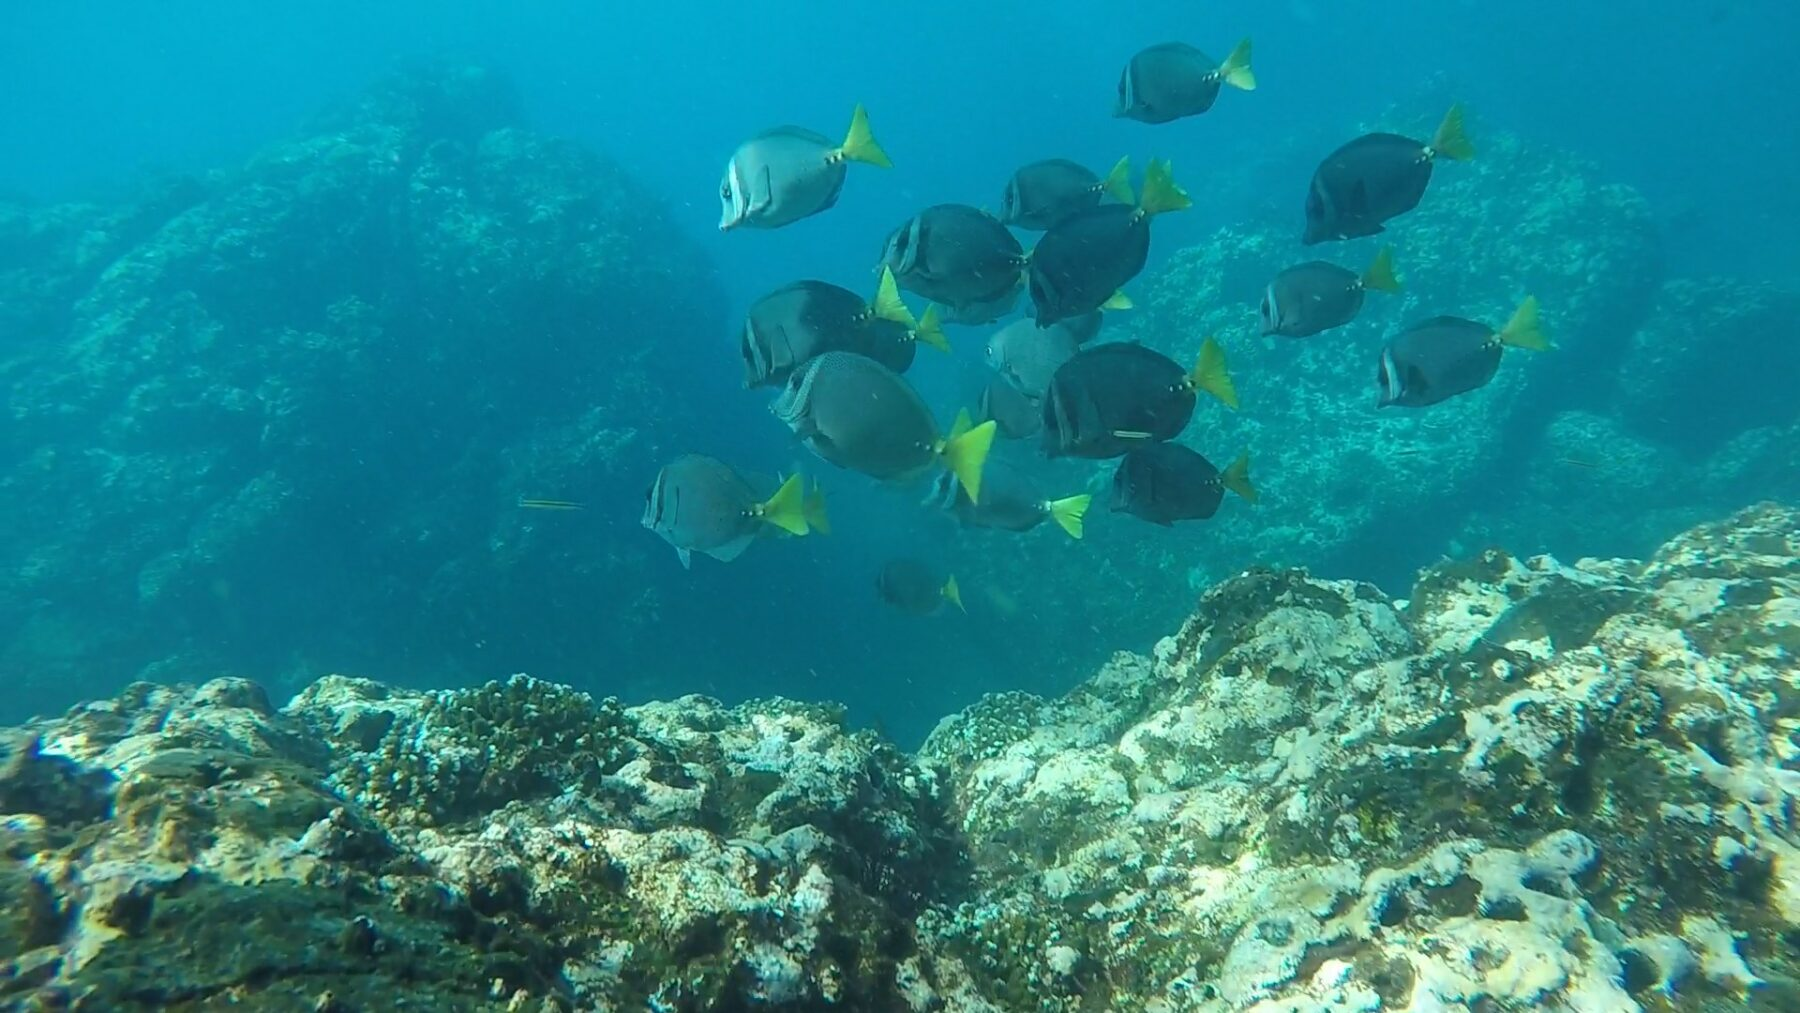 The Only NAUI Panama Diving Center is Cala Mia